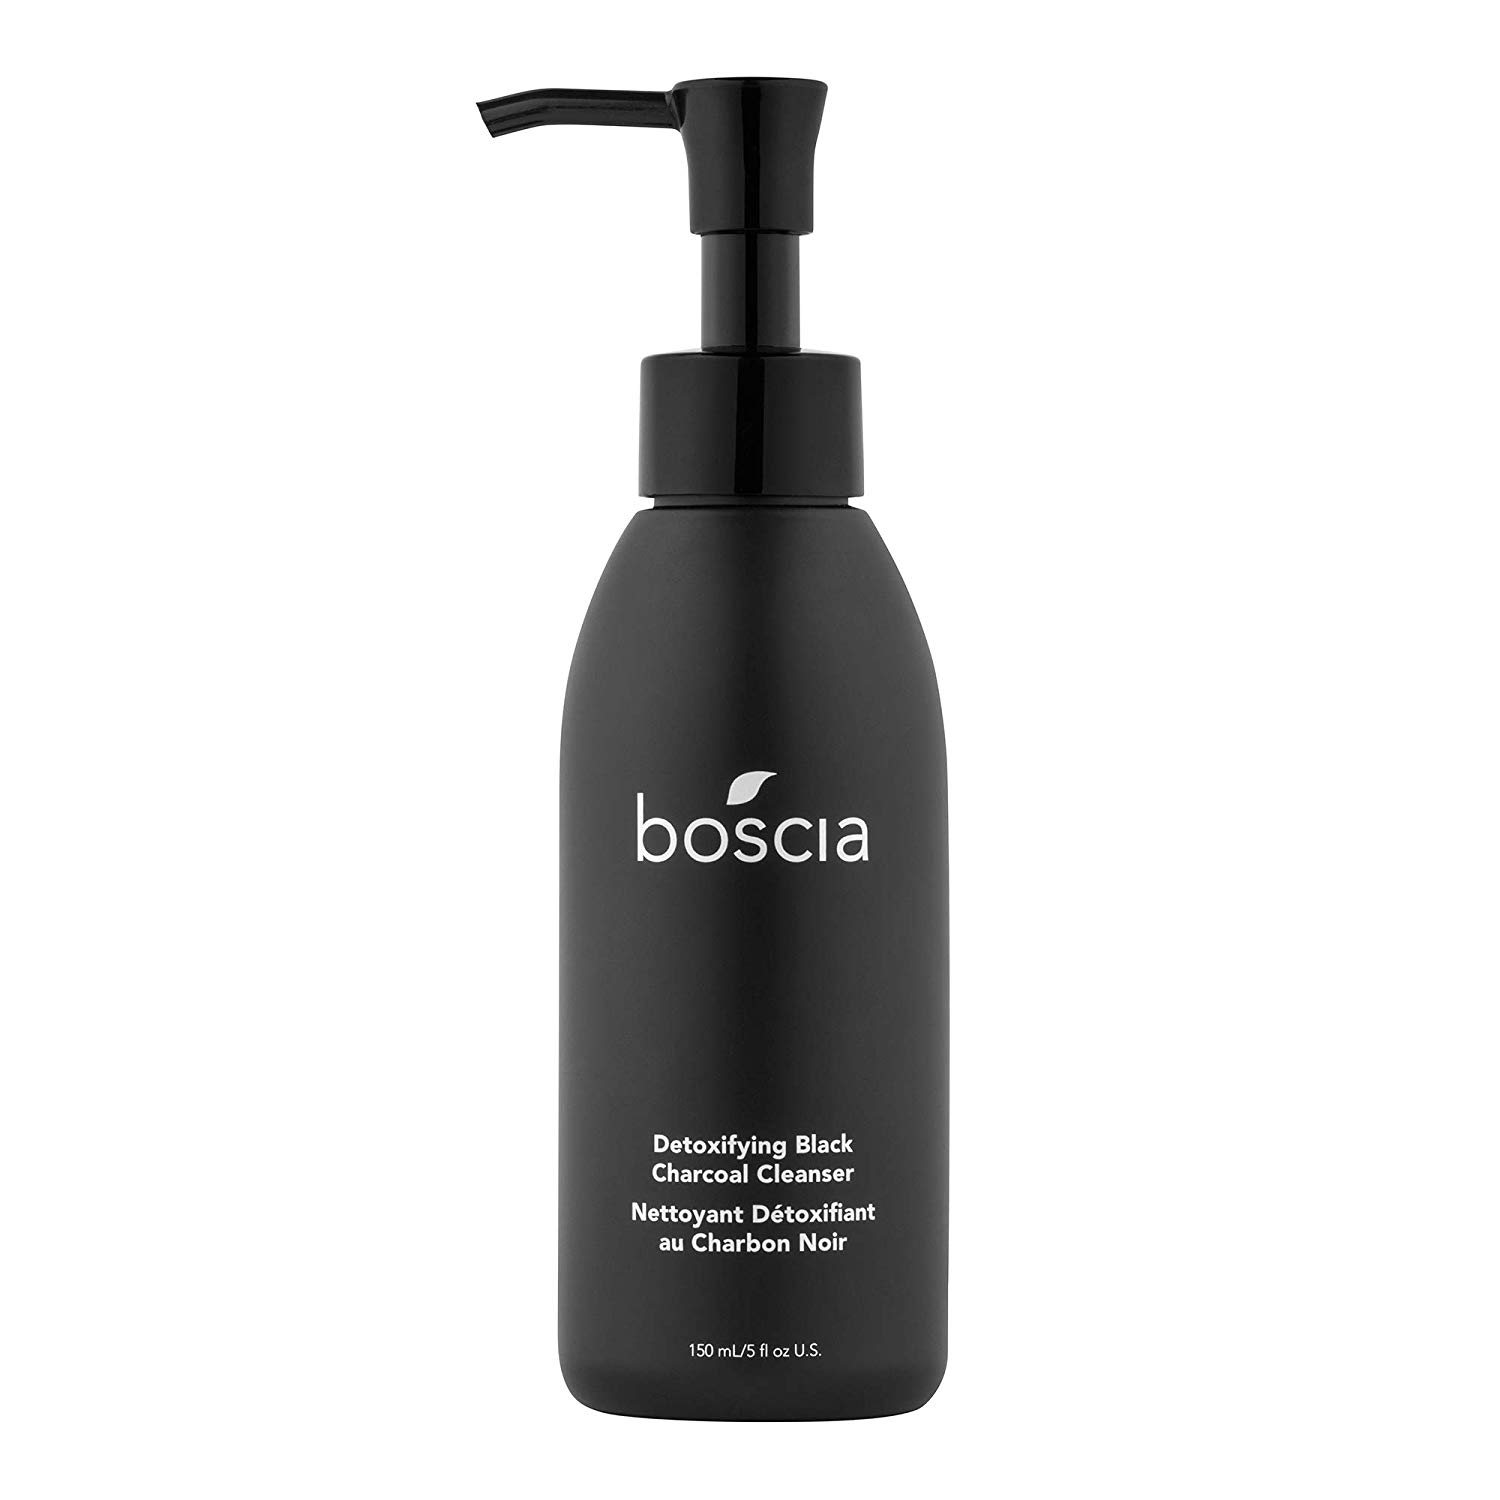 Boscia Detoxifying Black Charcoal Cleanser